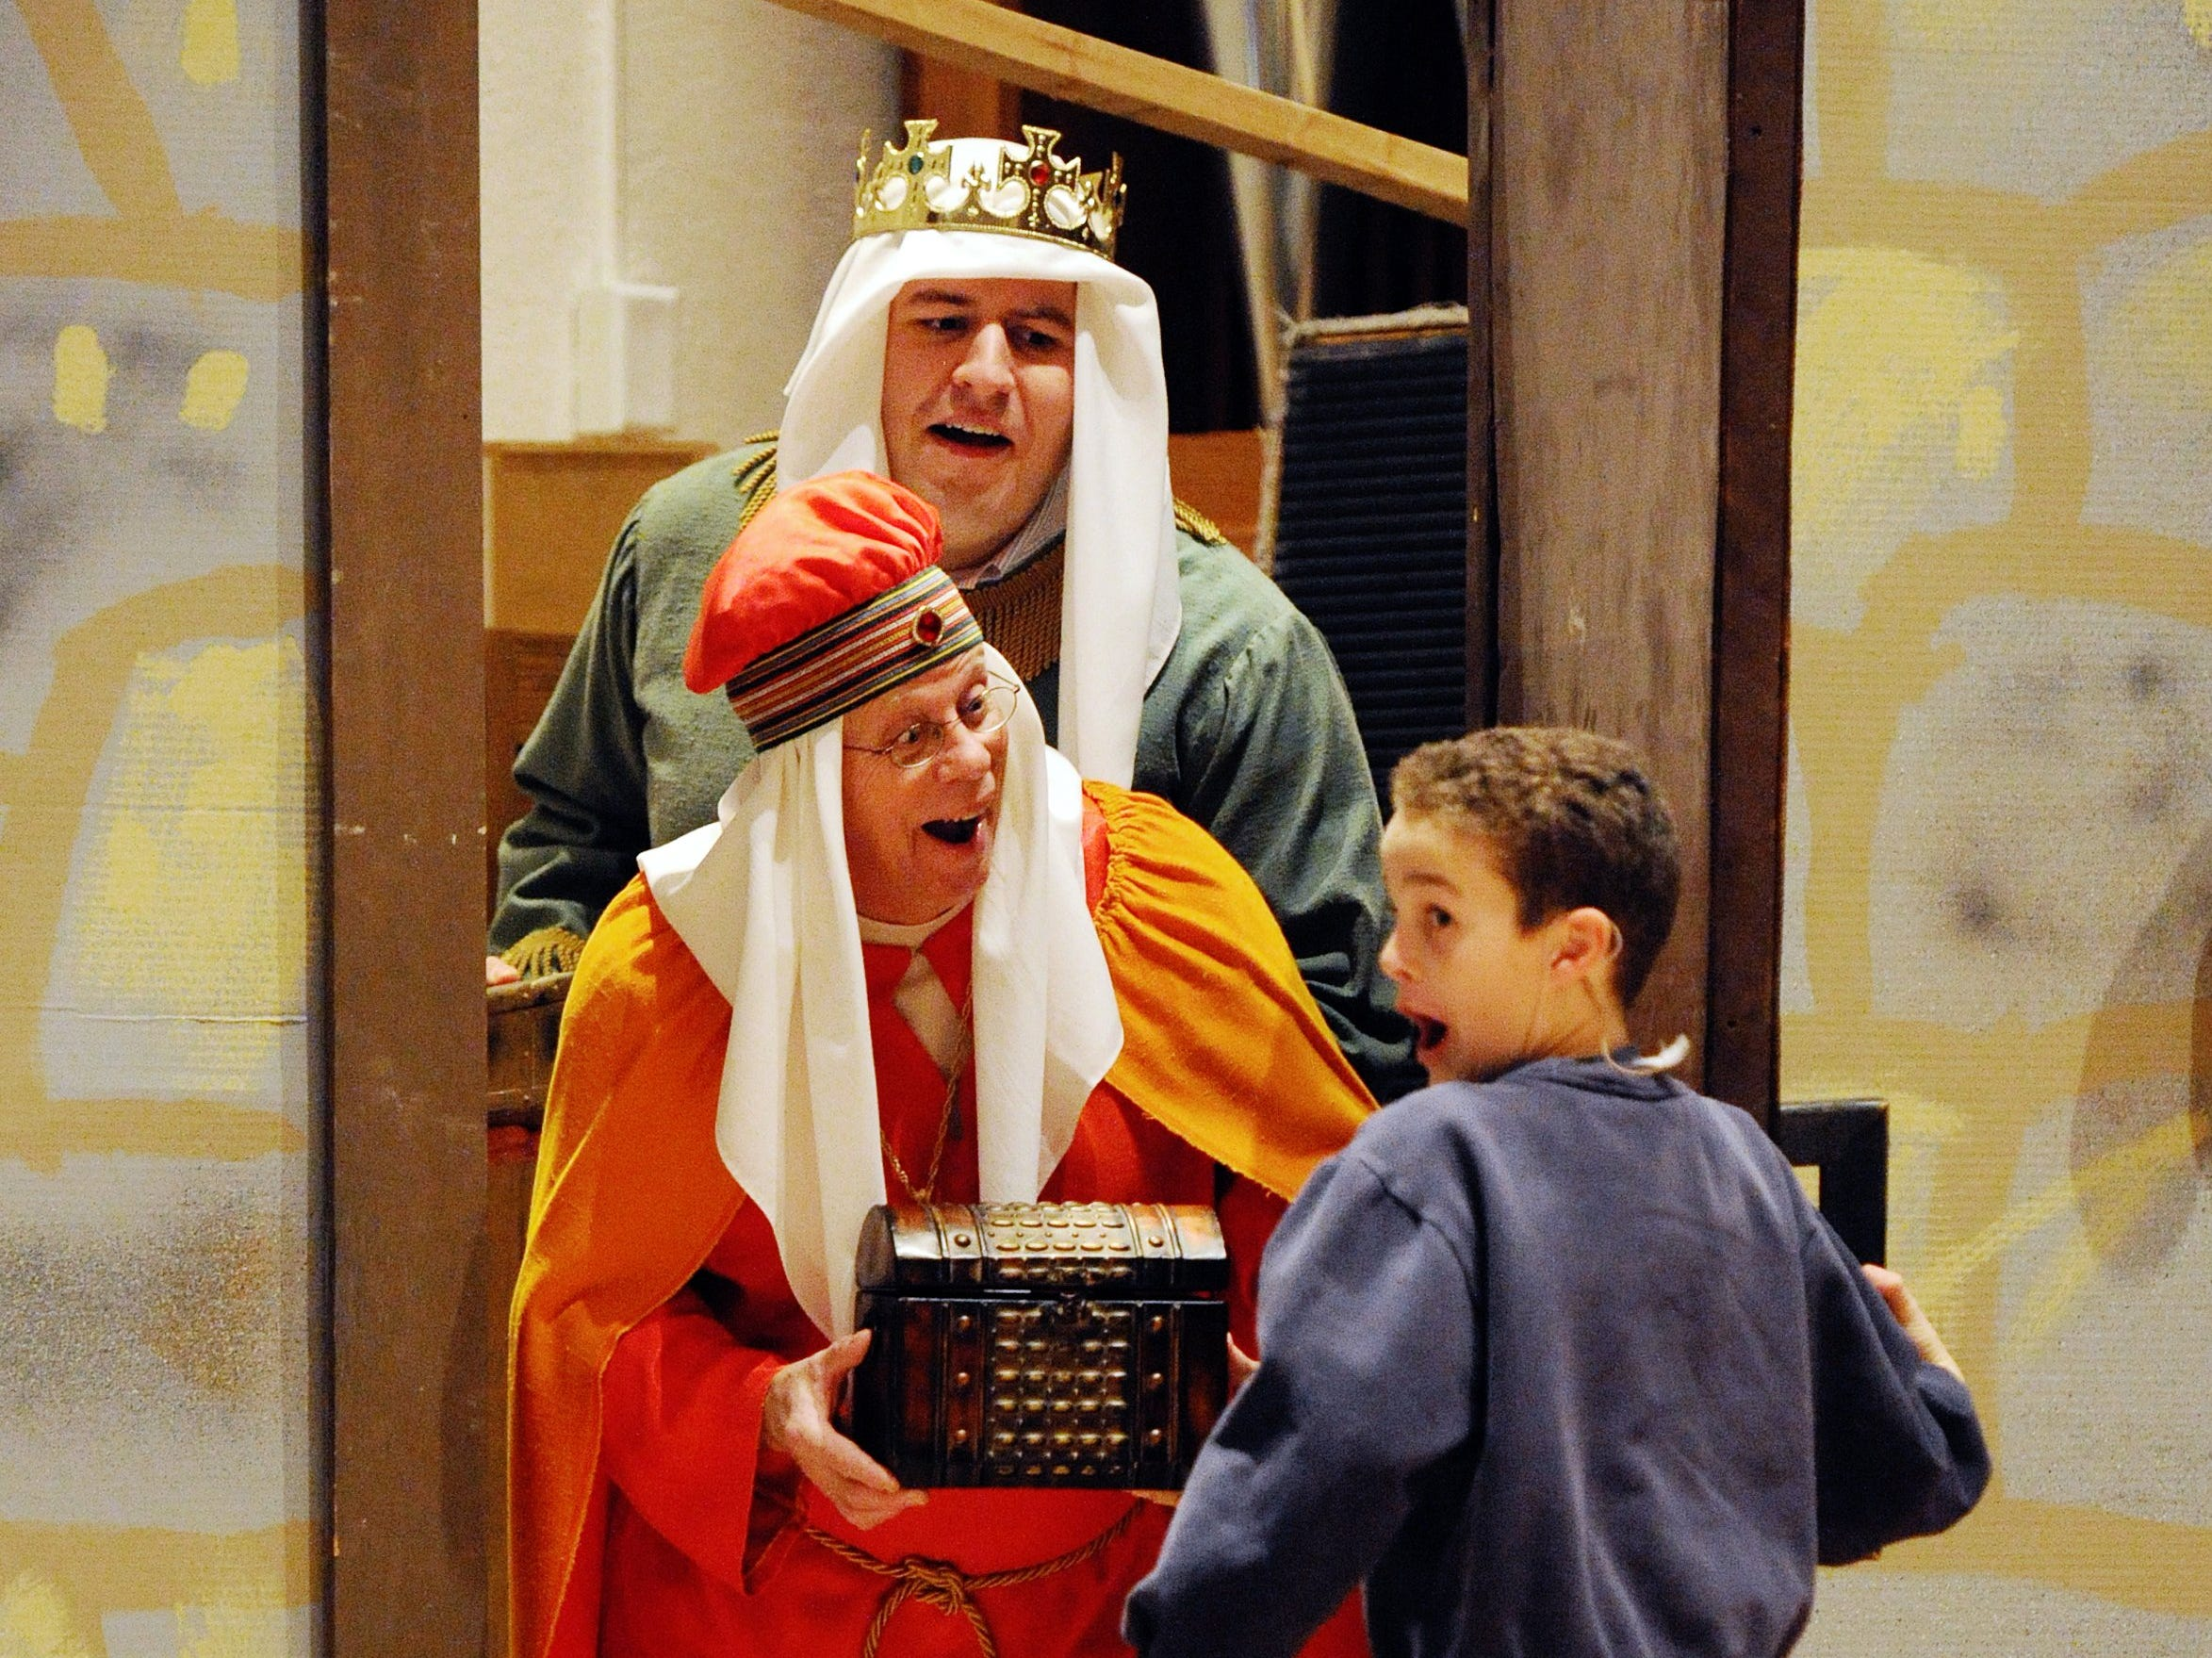 "Elias Courter, 11, rehearses a scene from Gian-Carlo Menotti's ""Amahl and the Night Visitors,"" with fellow cast members, Mark Schweickart, center, and Jason Jett, back center, at Methodist Temple in Evansville on Tuesday, December 10, 2013.  Courter plays Amahl in the lead role.  The Christmas opera will be performed at 3 p.m. and 6 p.m. on Sunday, December 15 at the Temple."